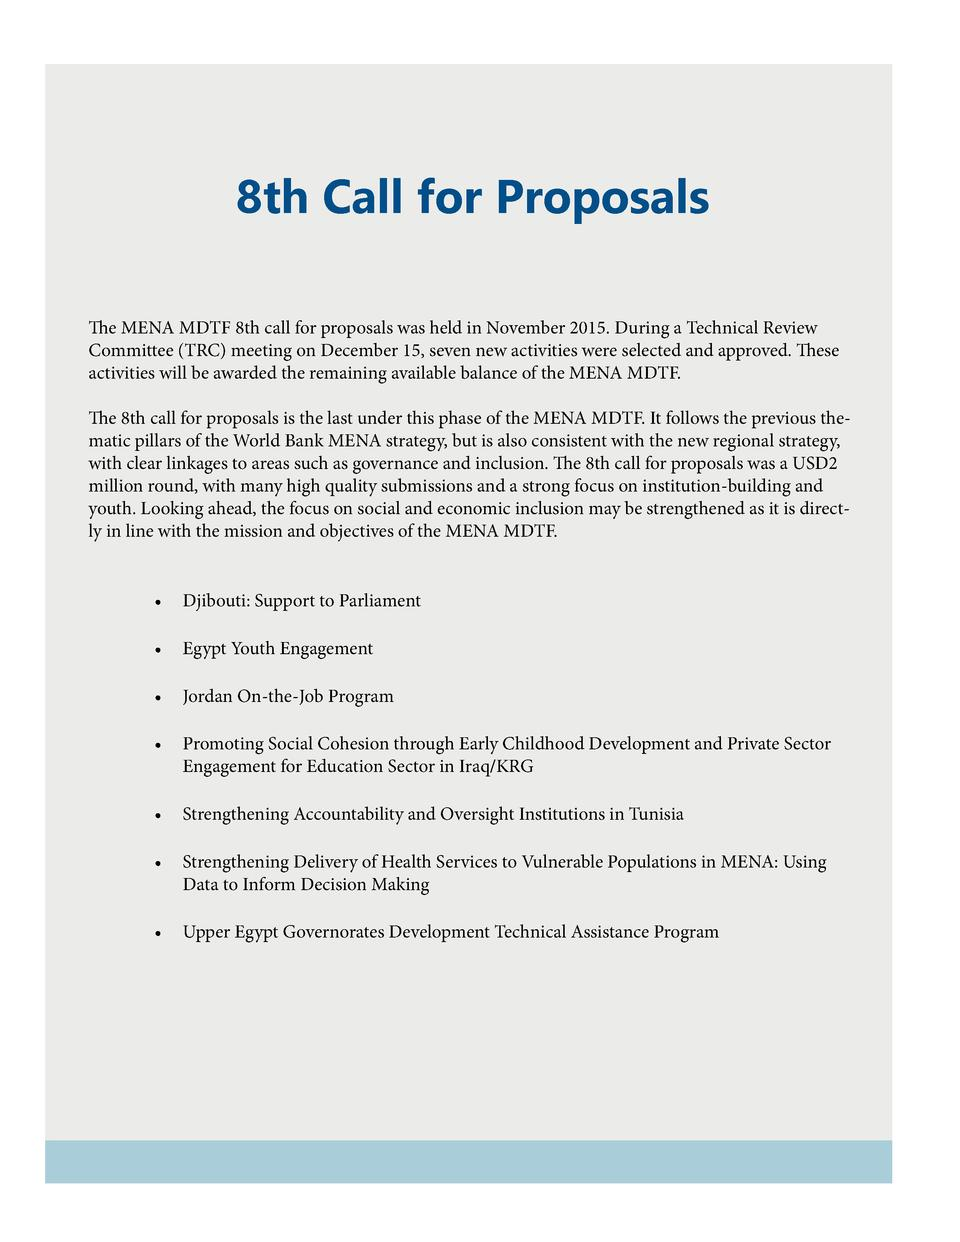 8th Call for Proposals The MENA MDTF 8th call for proposals was held in November 2015. During a Technical Review Committee...